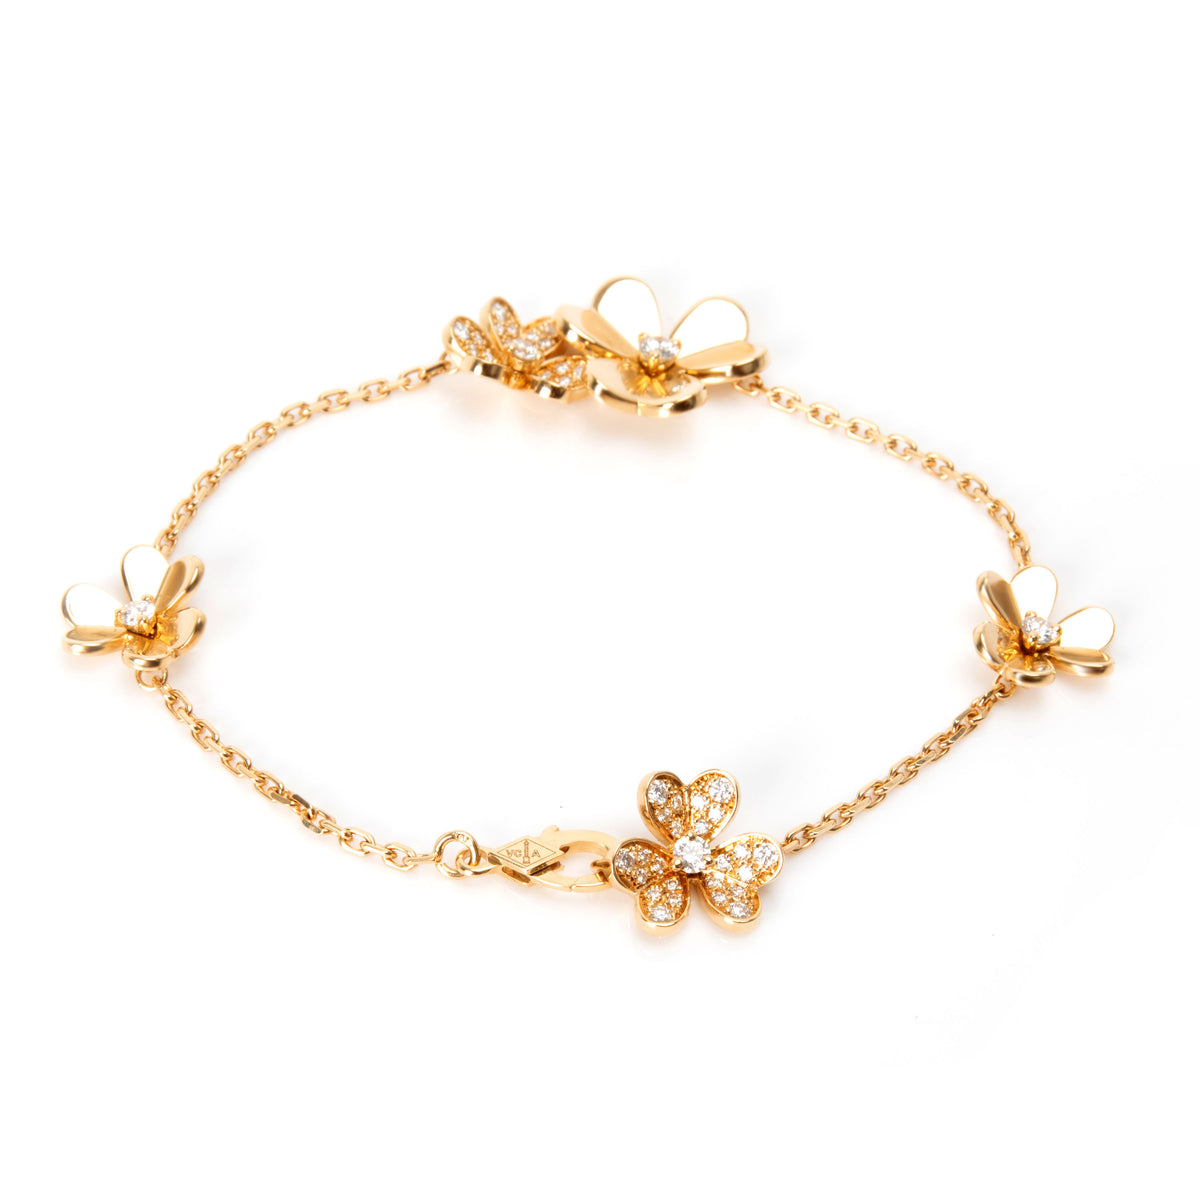 Van Cleef & Arpels Frivole Diamond Bracelet in  Yellow Gold 0.61 CTW